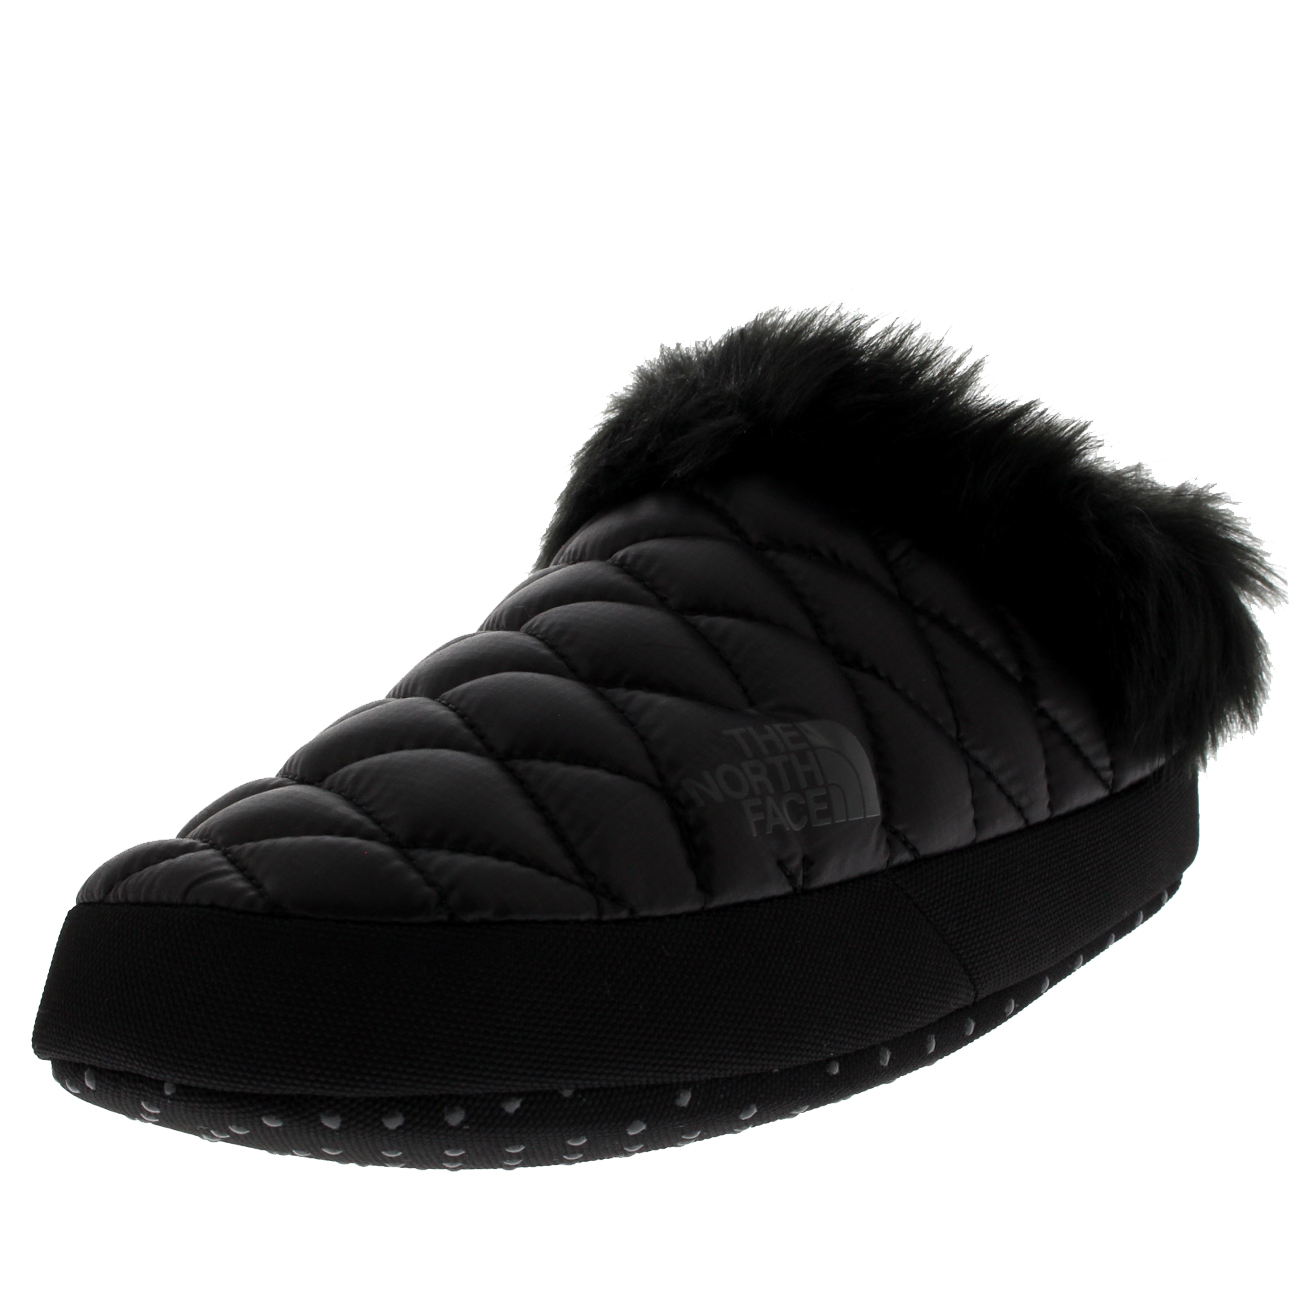 Womens The North Face Thermoball Tent Mule Faux Fur IV Cosy Slippers UK 3-8.5  sc 1 st  eBay & Womens The North Face Thermoball Tent Mule Faux Fur IV Cosy Slippers ...